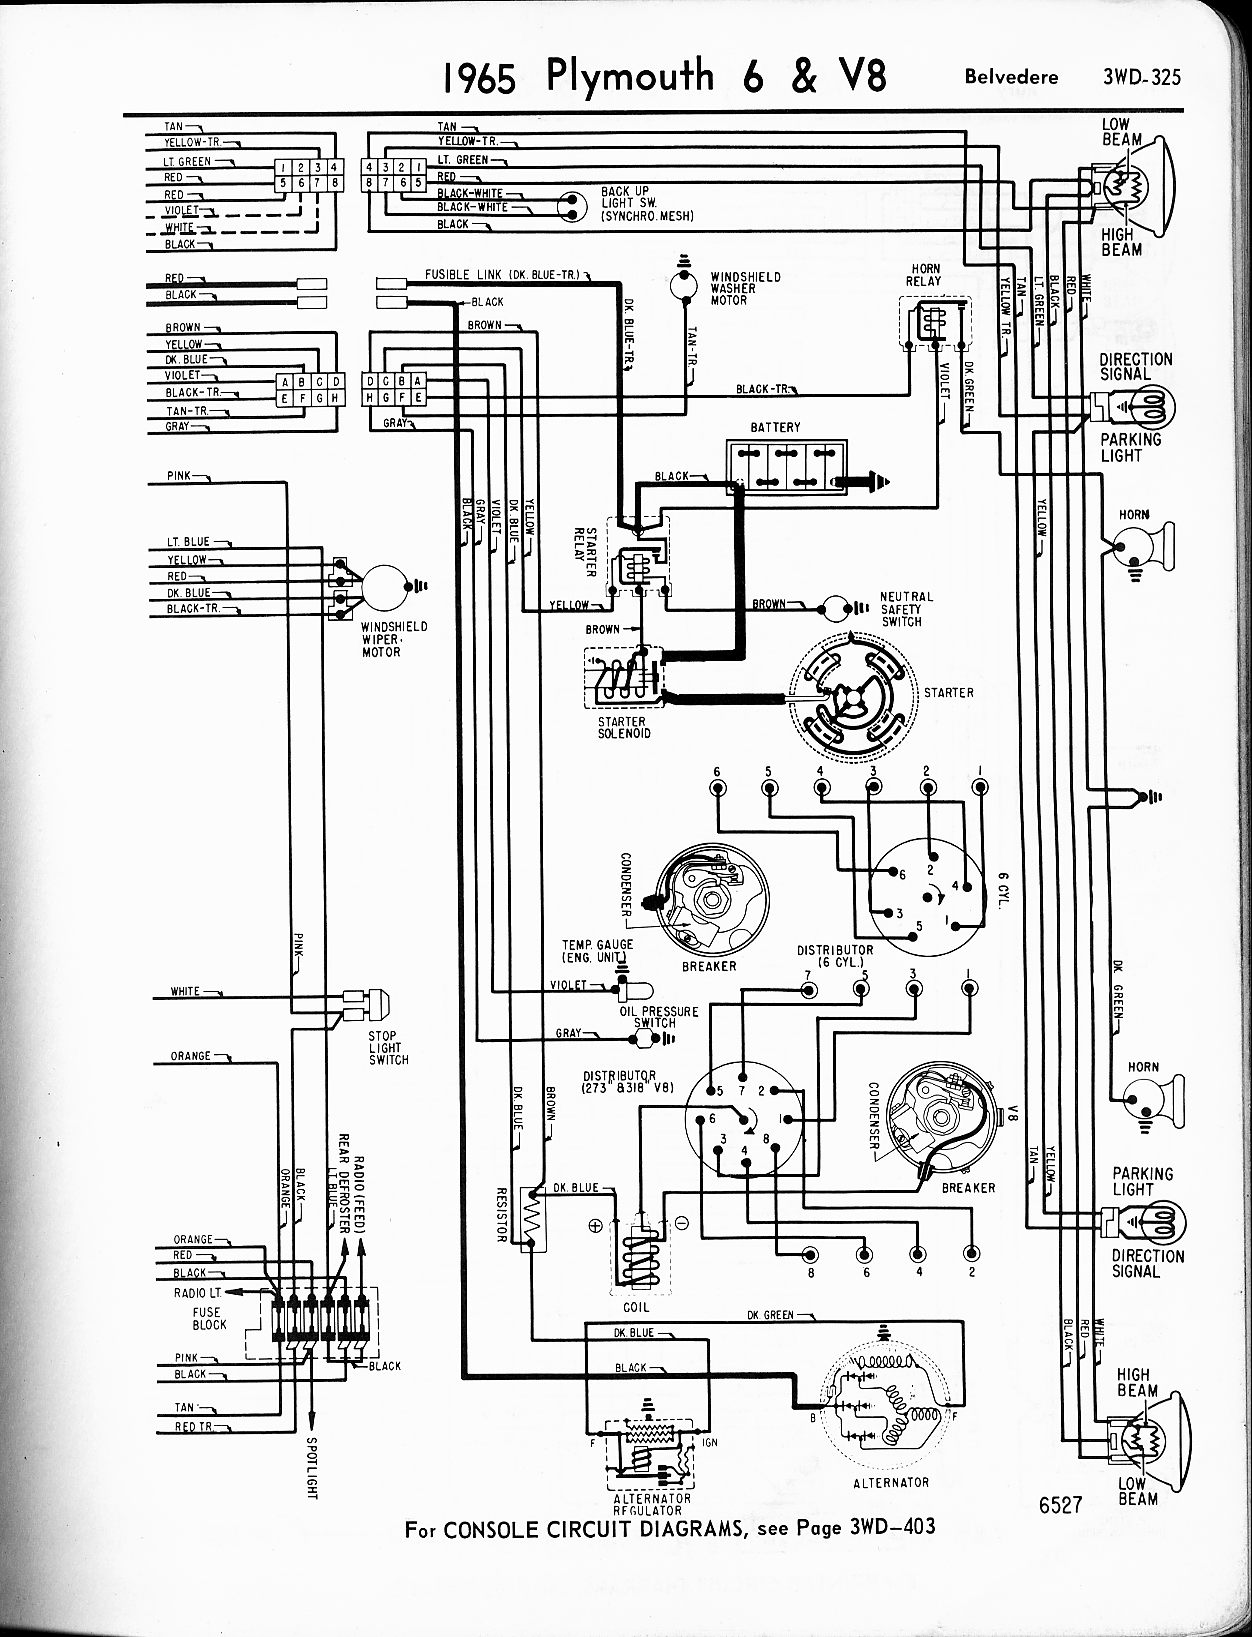 1956 1965 plymouth wiring the old car manual project Signal Stat 800 Wiring Diagram 1965 plymouth 6 v8 belvedere right page